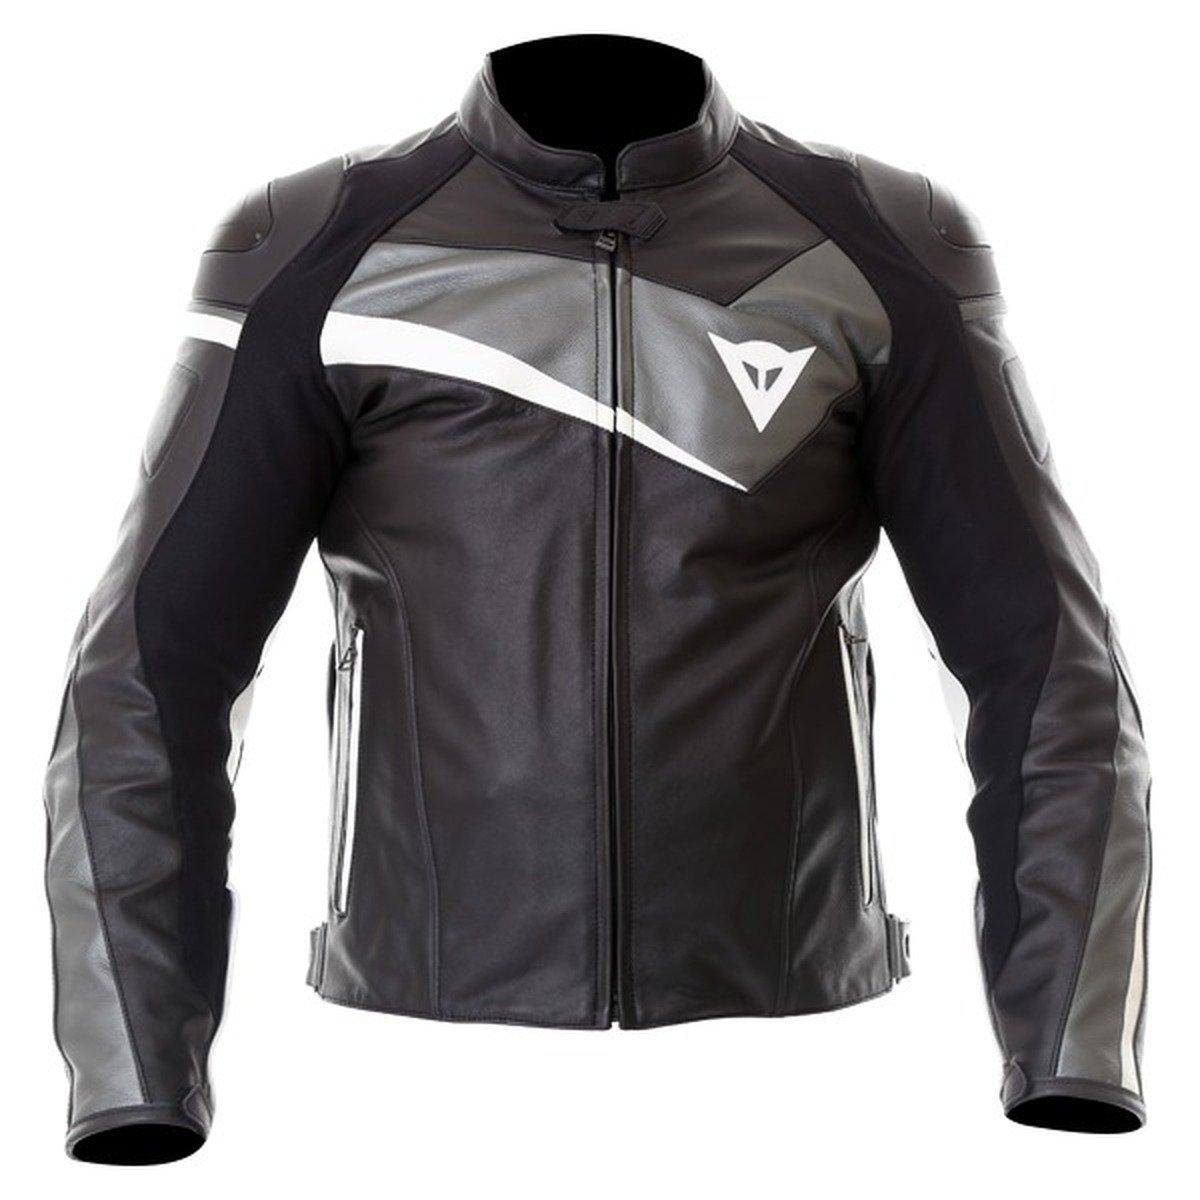 Dainese Velostar Leather Jacket Black and Anthracite